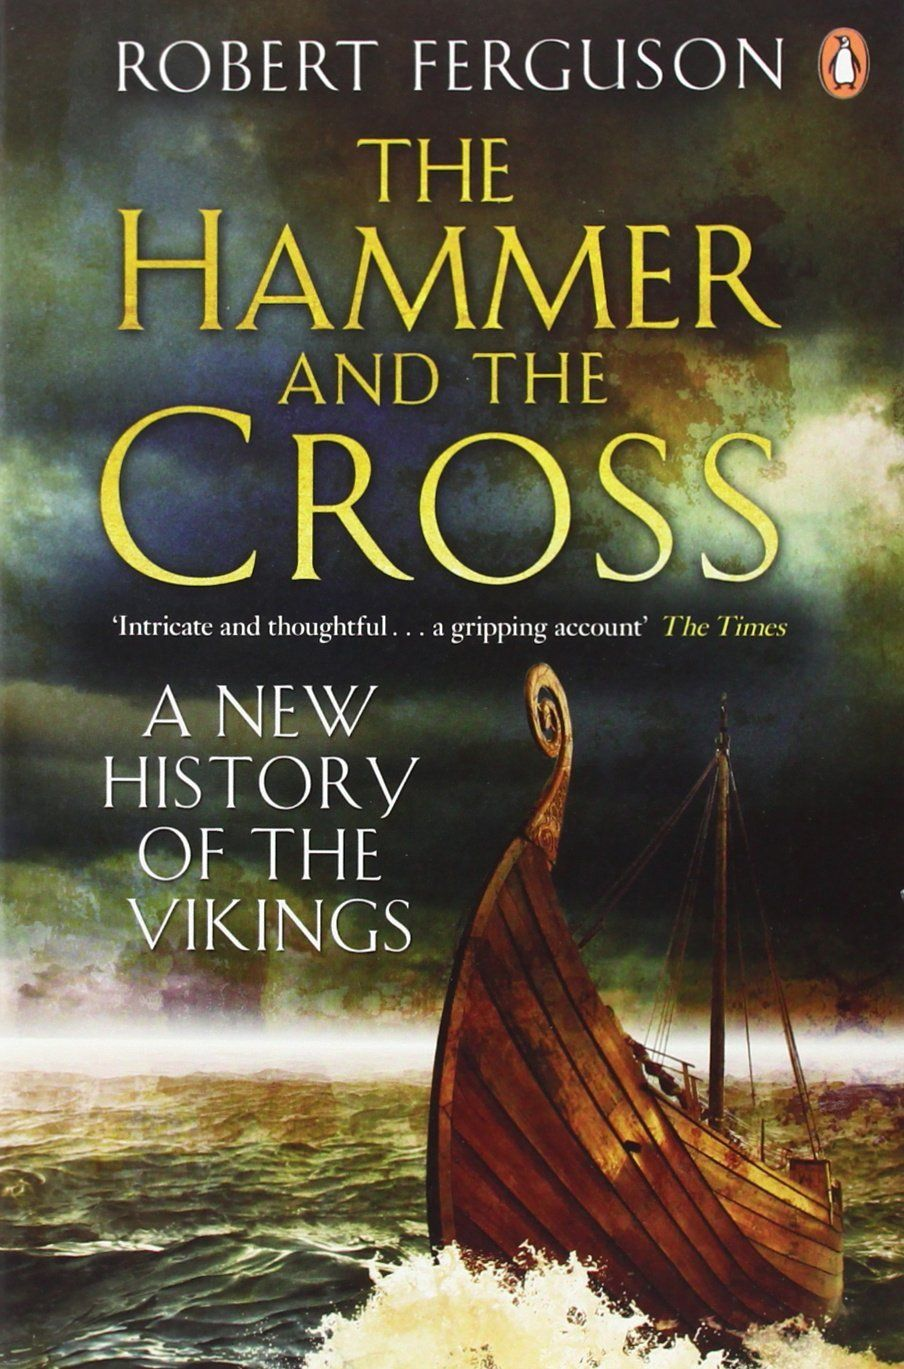 Robert Ferguson – The Hammer And The Cross: A New History Of The Vikings